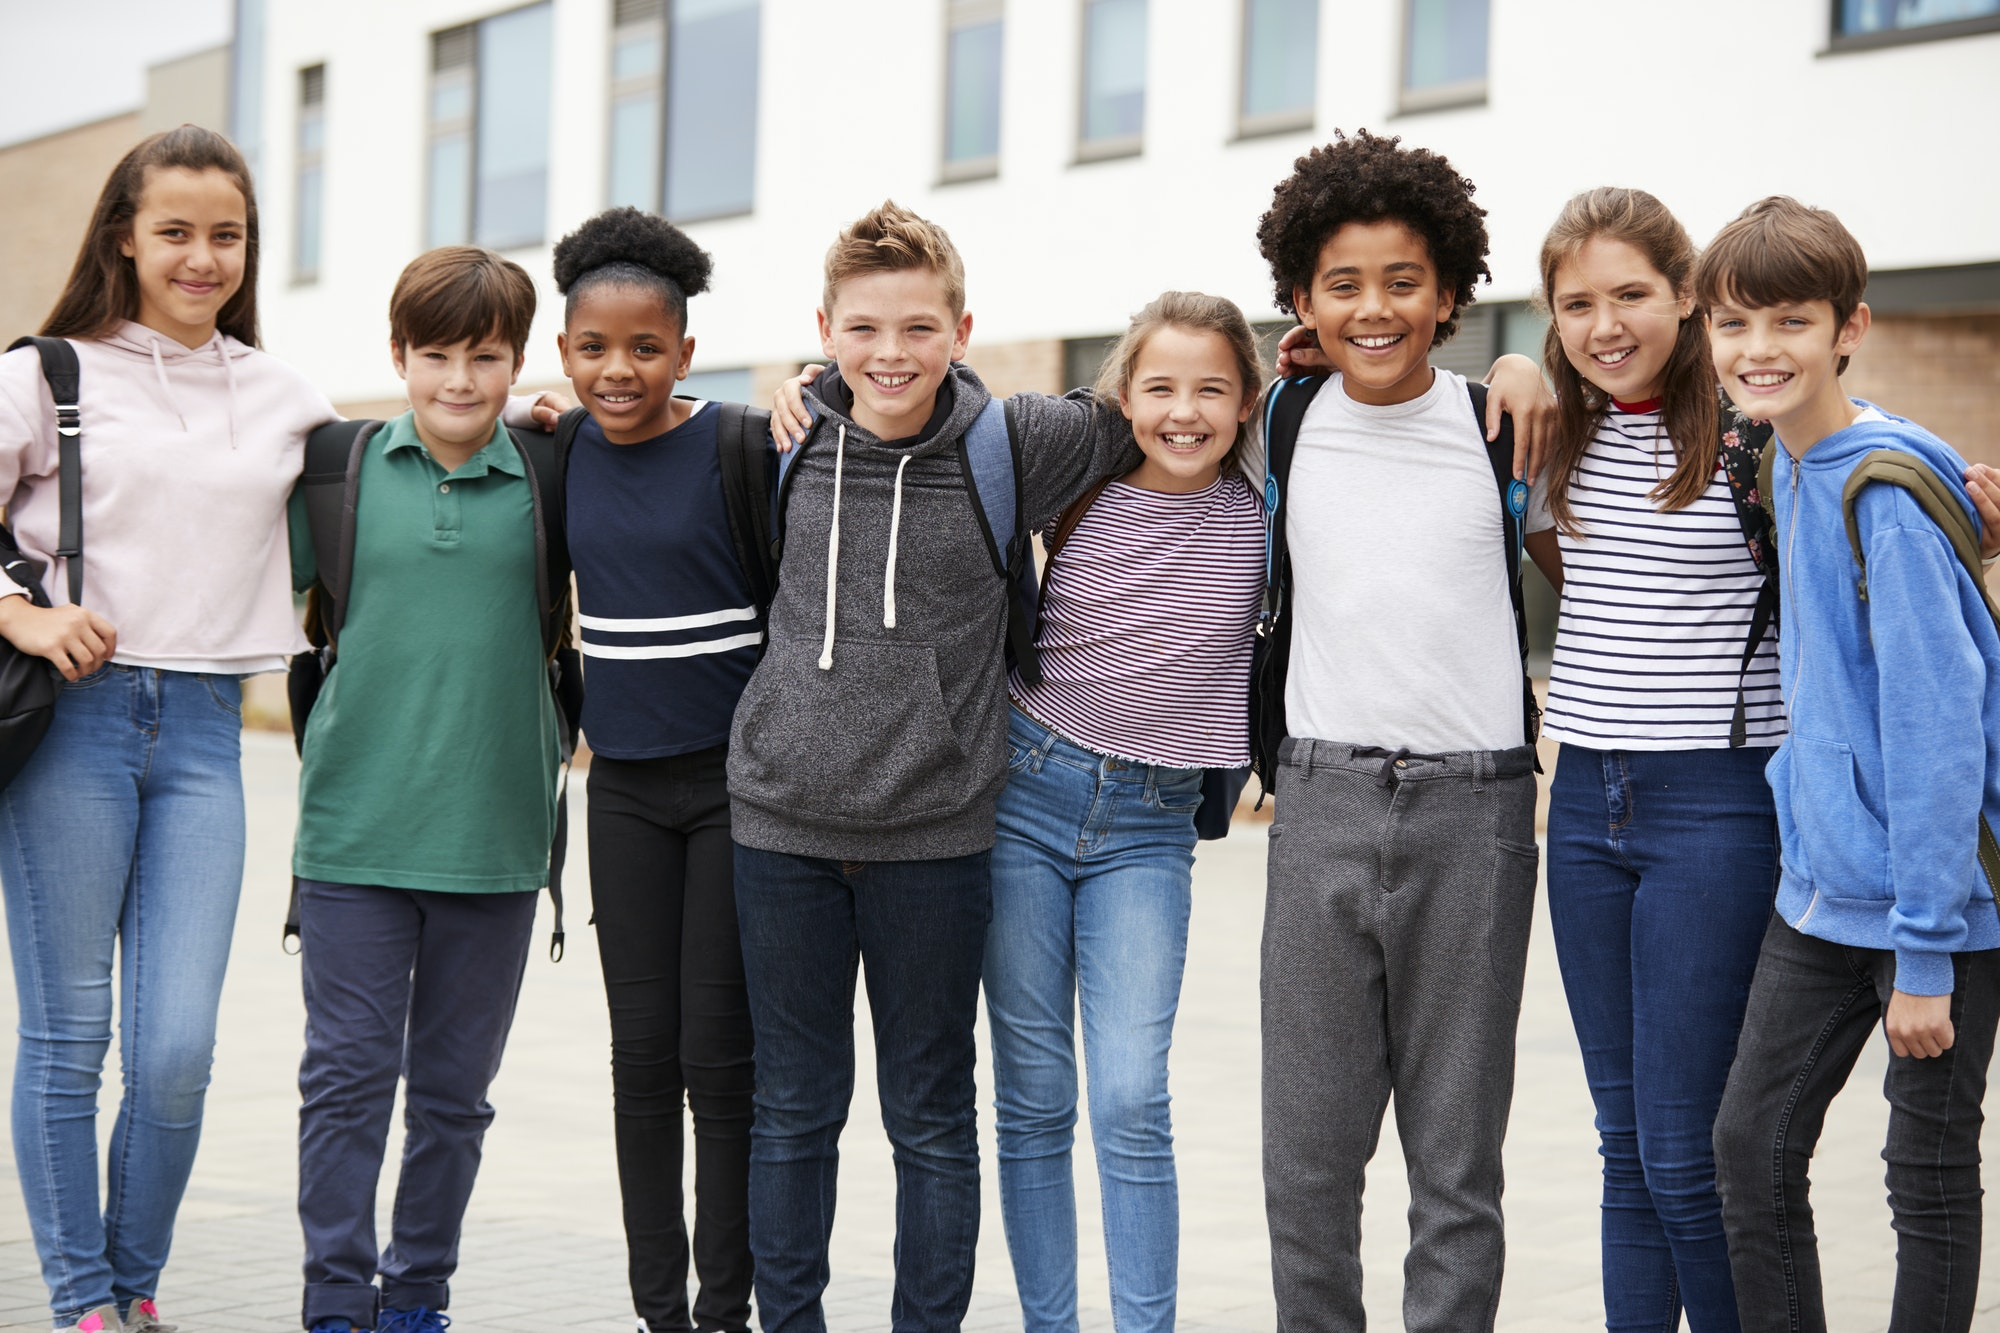 Portrait Of High School Student Group Standing Outside School Buildings